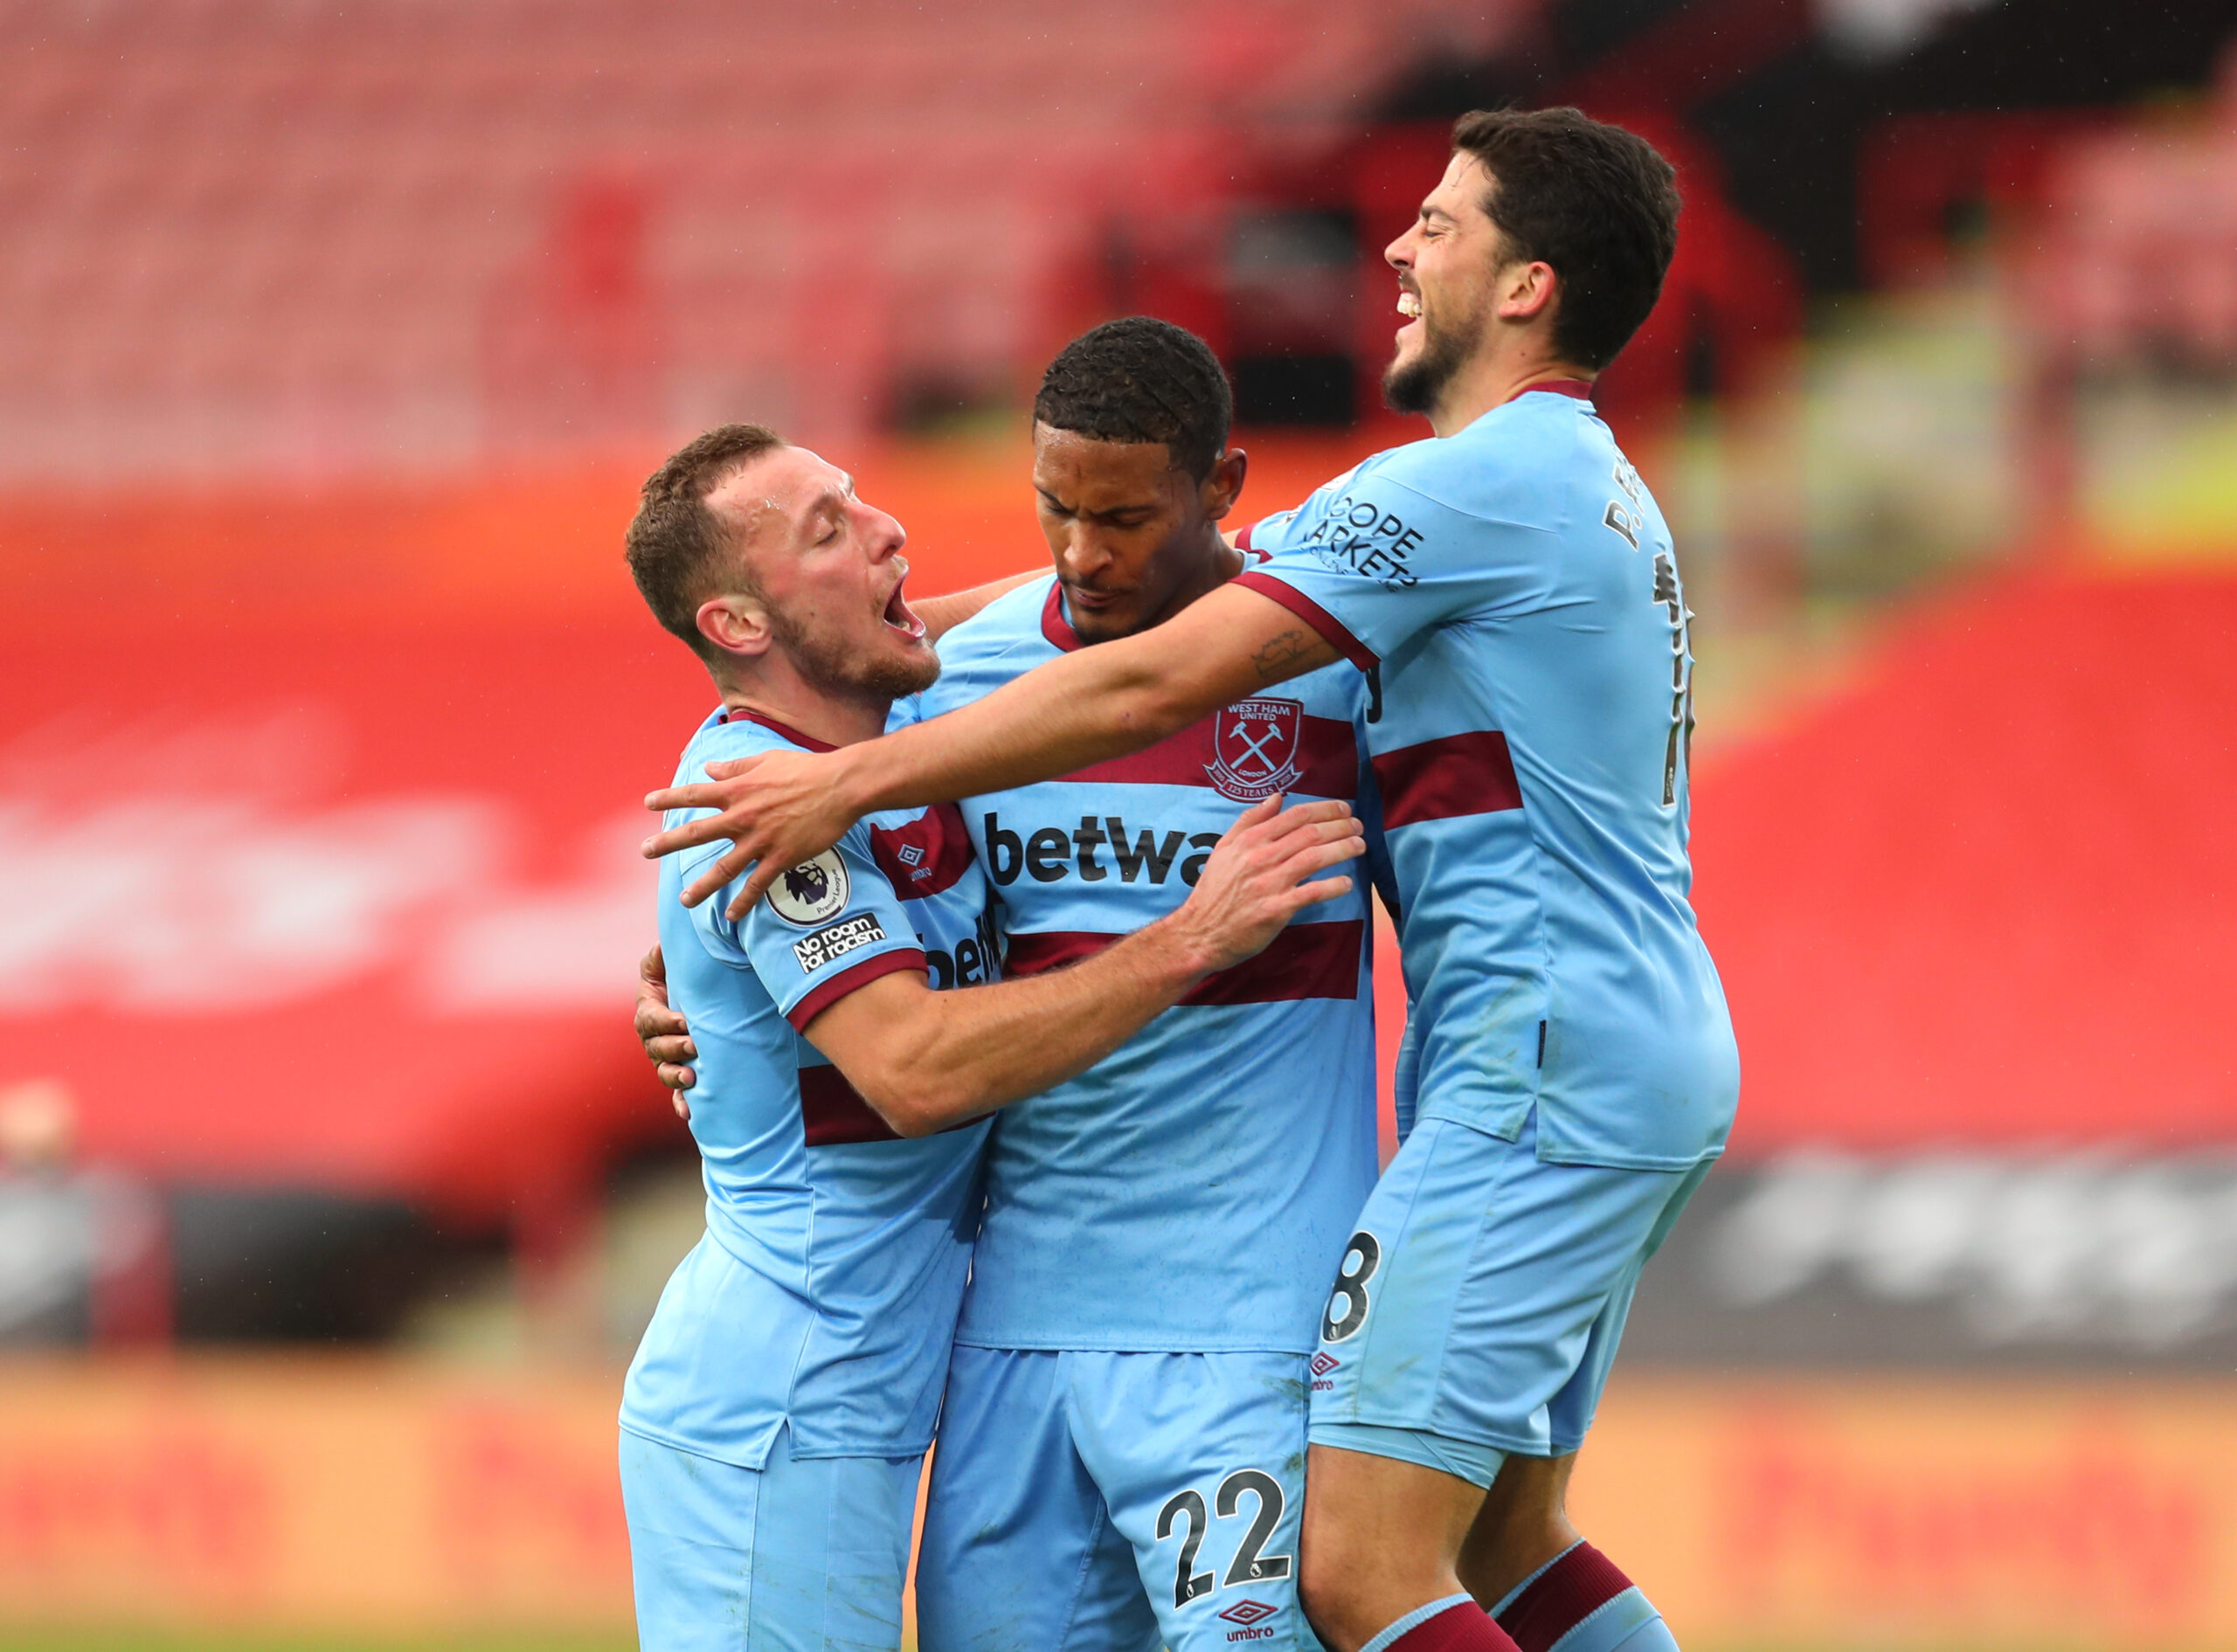 West Ham United Vs Aston Villa 30 11 2020 Match Preview And Predicted Starting Xis 90maat